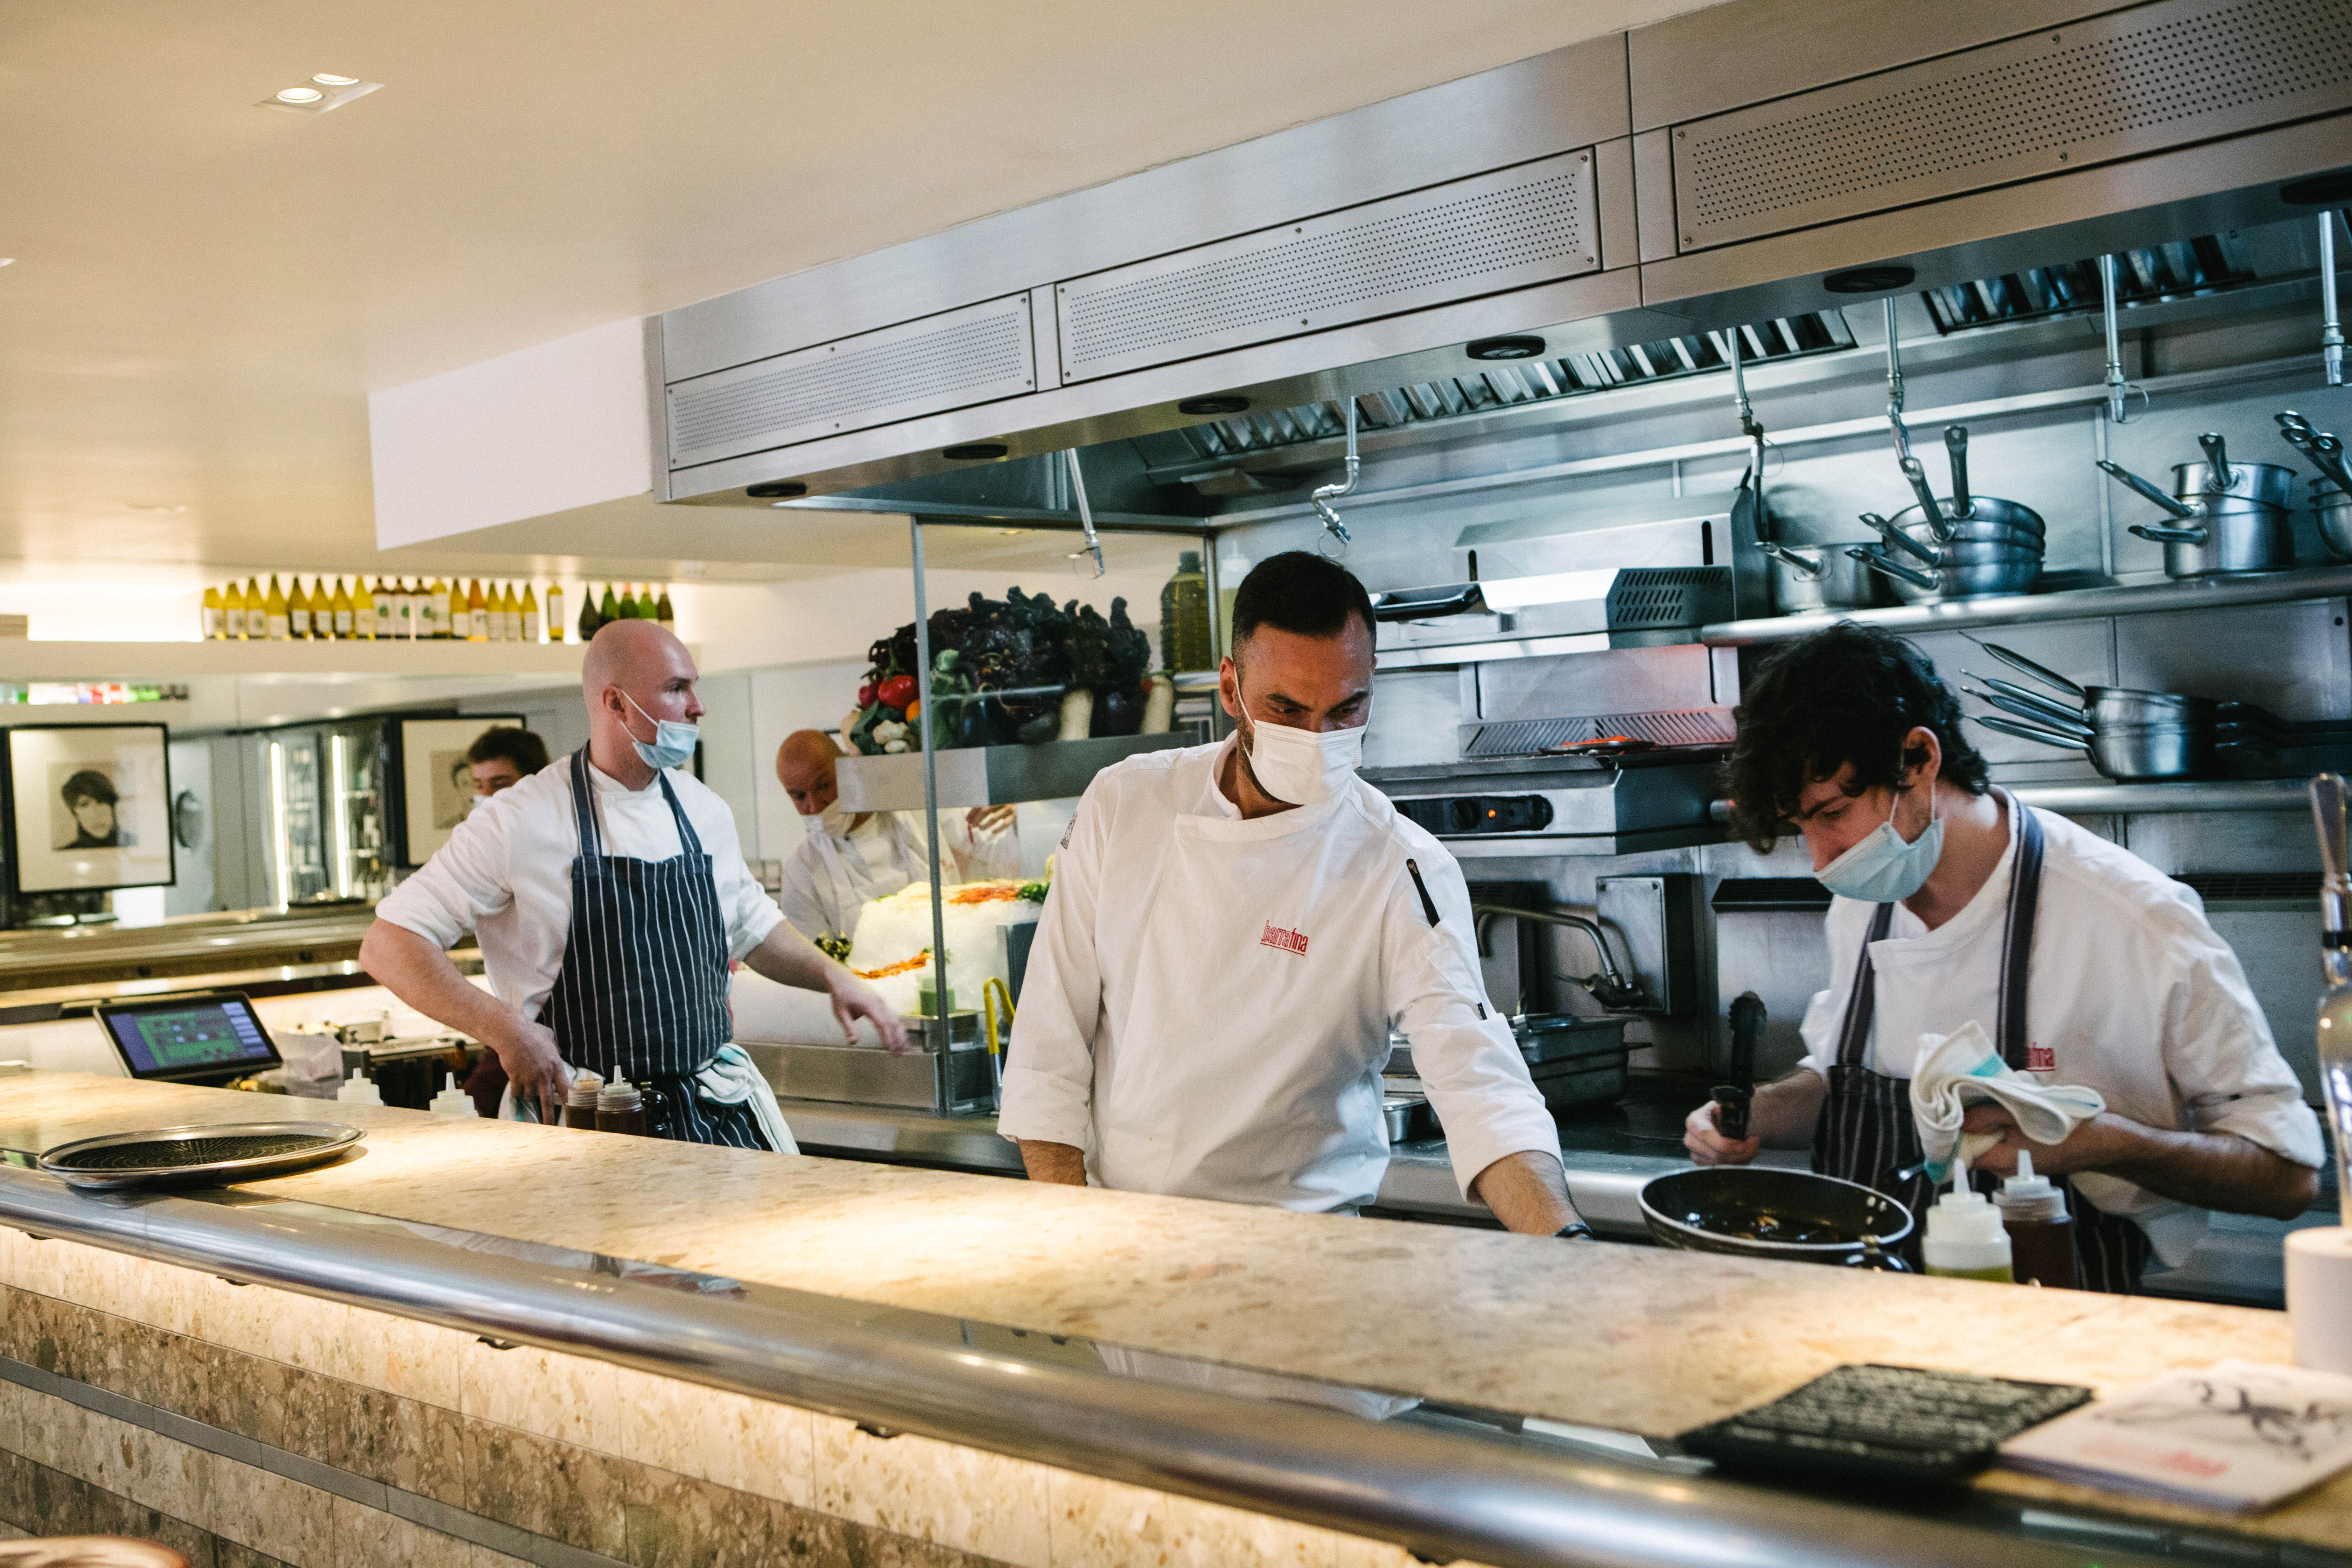 Barrafina, a Michelin-starred restaurant in Soho, will be open for dishes like ham croquetas, pig's trotter and prawns